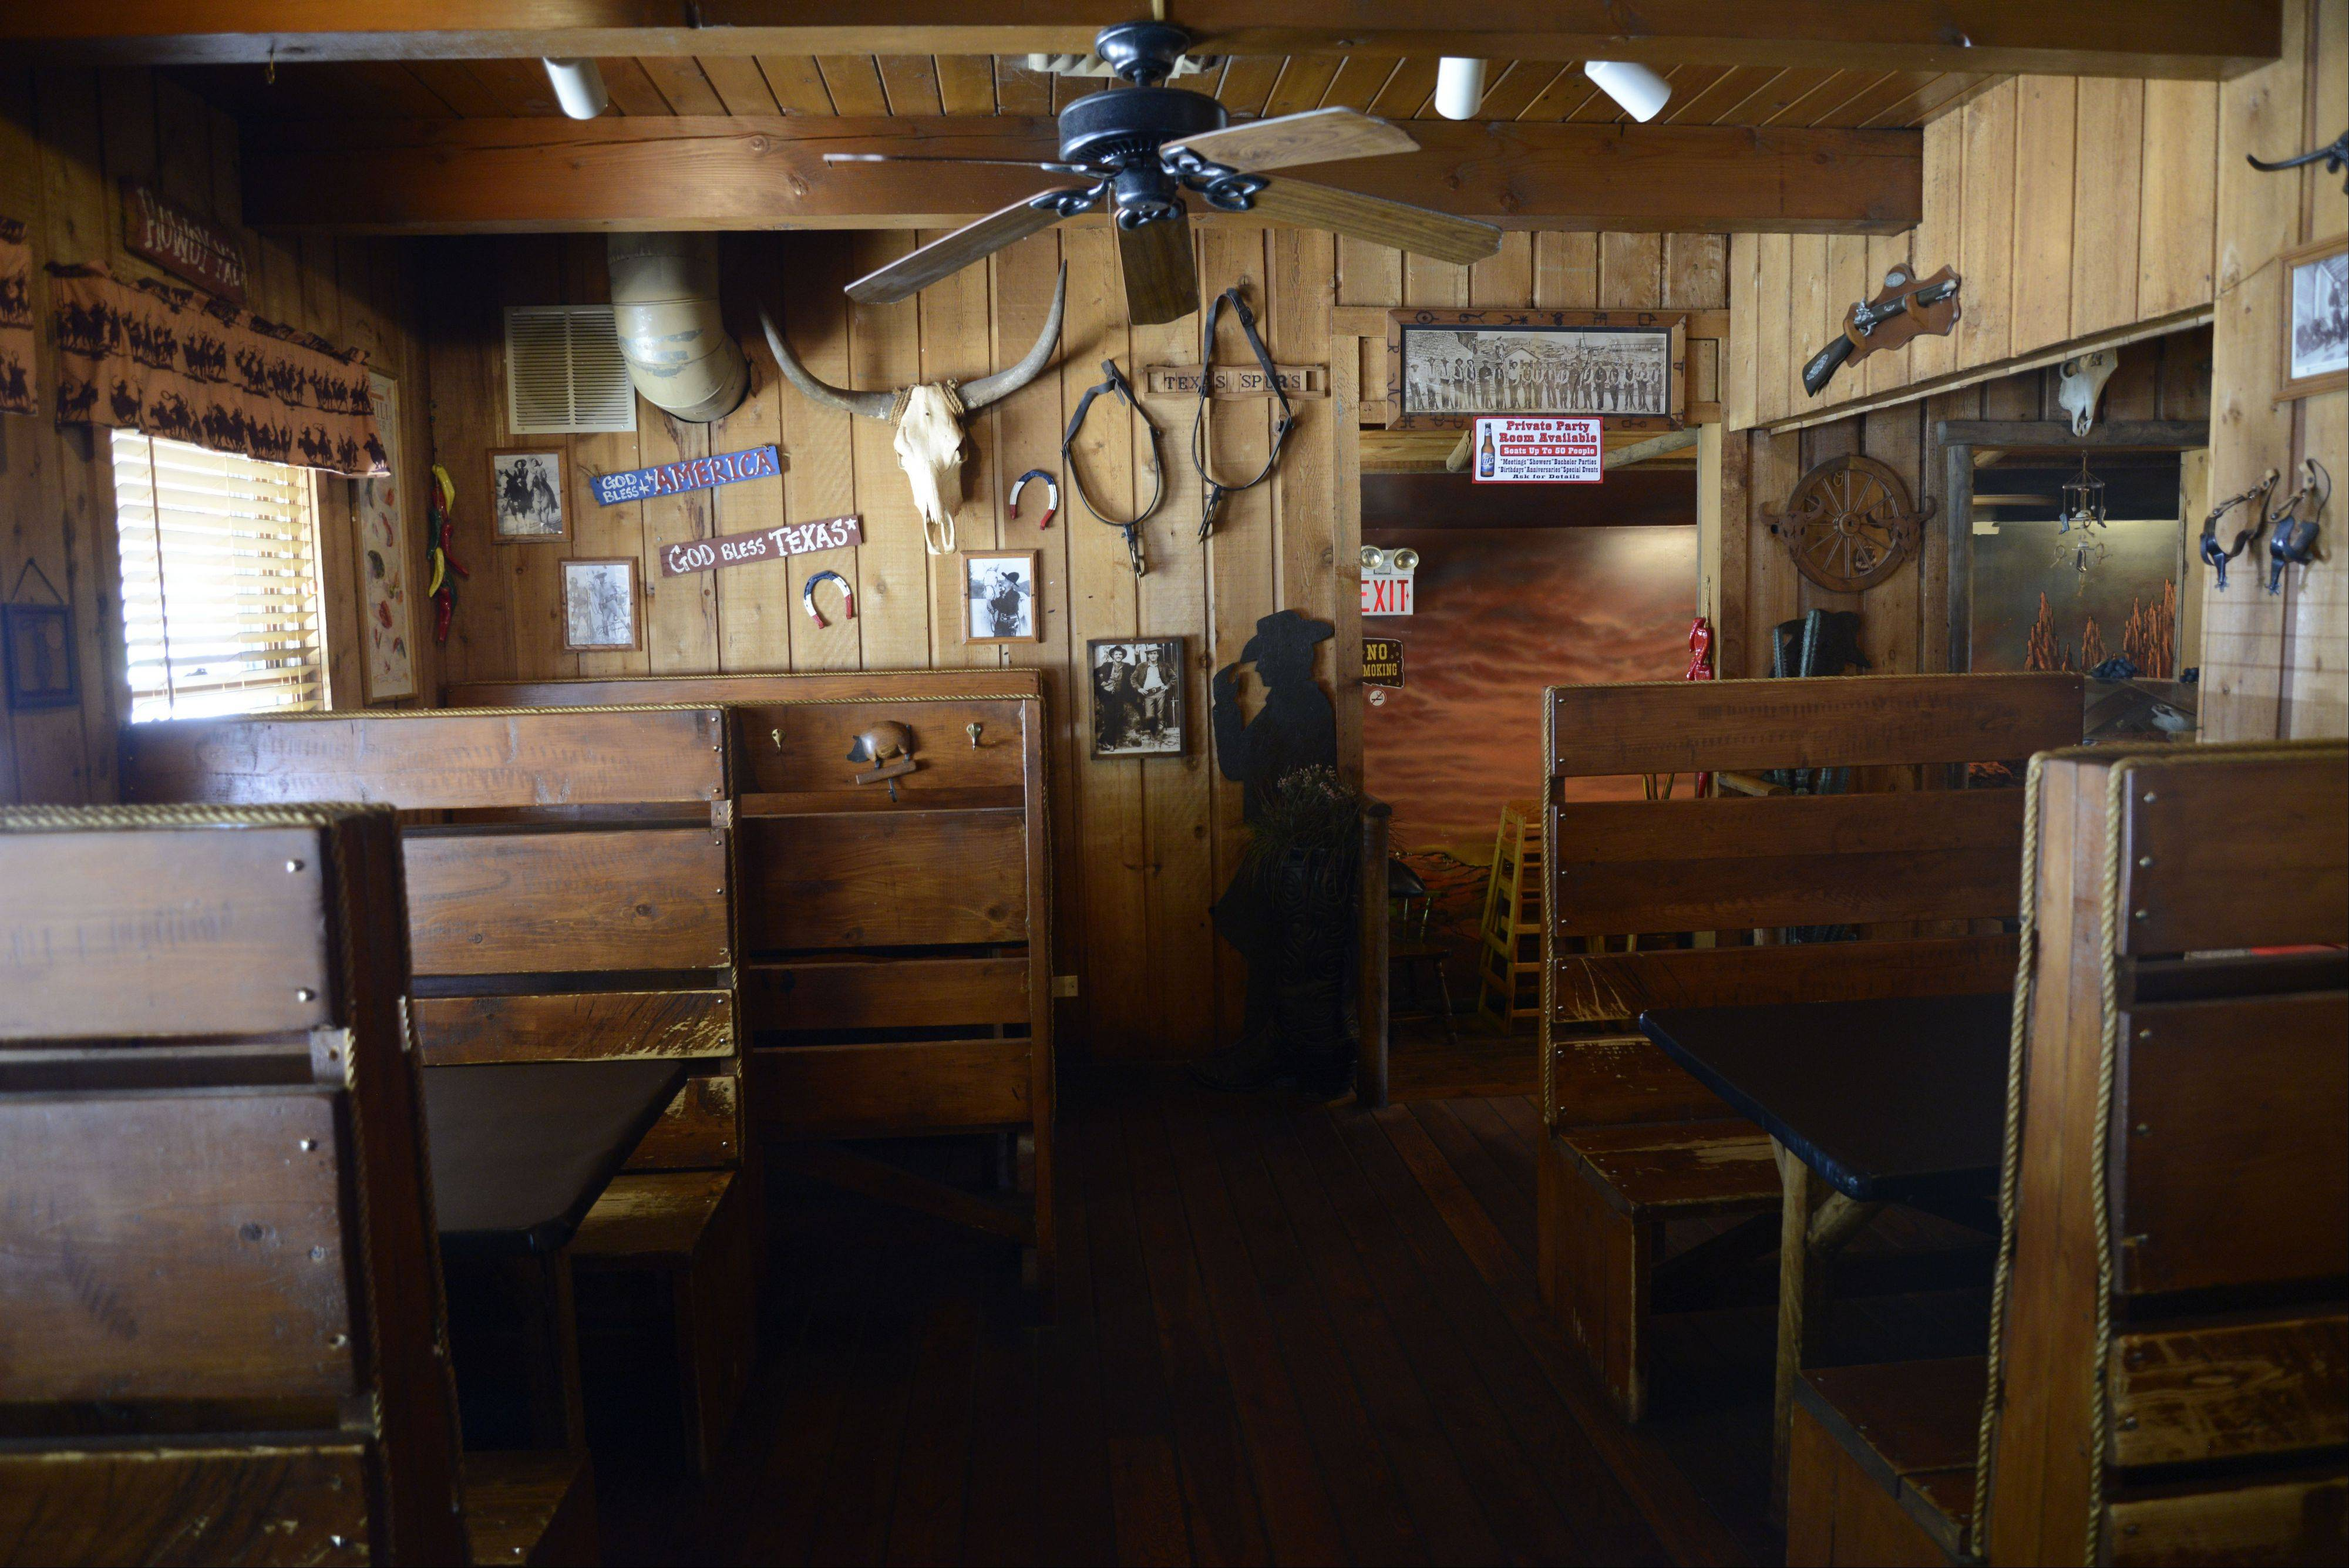 Want a little atmosphere with your tasty 'cue? Texan Bar-B-Q in Algonquin is the place for you.